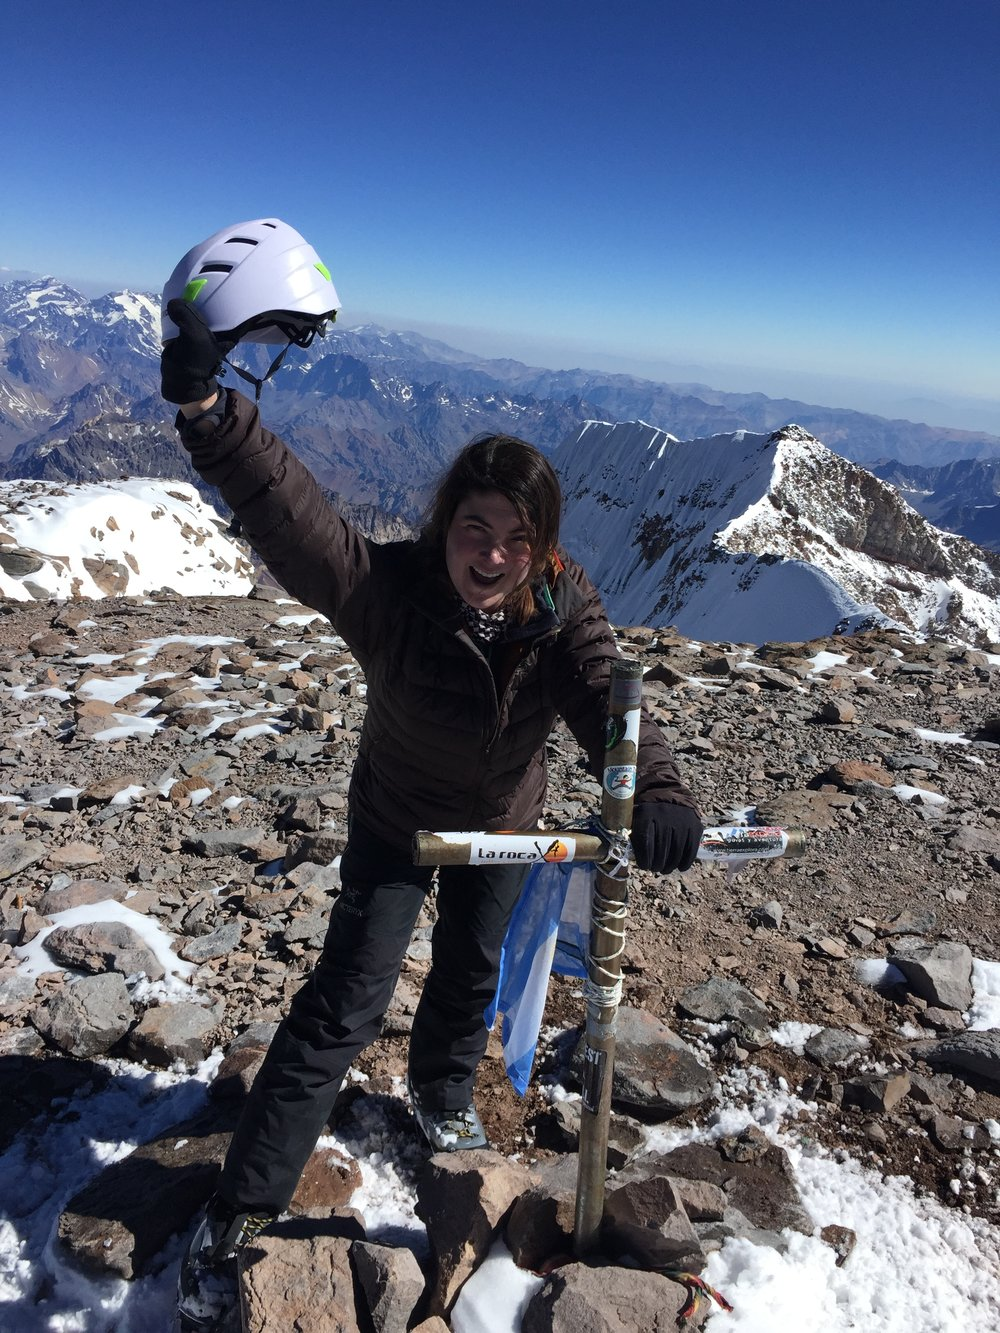 Aconcagua - Location: South America 22,838 ft / 6,961mSummit Date: March 8th, 2016Route: NormalTrip Length: 21 DaysCompany: Mountain Madness and Grajales Expeditions